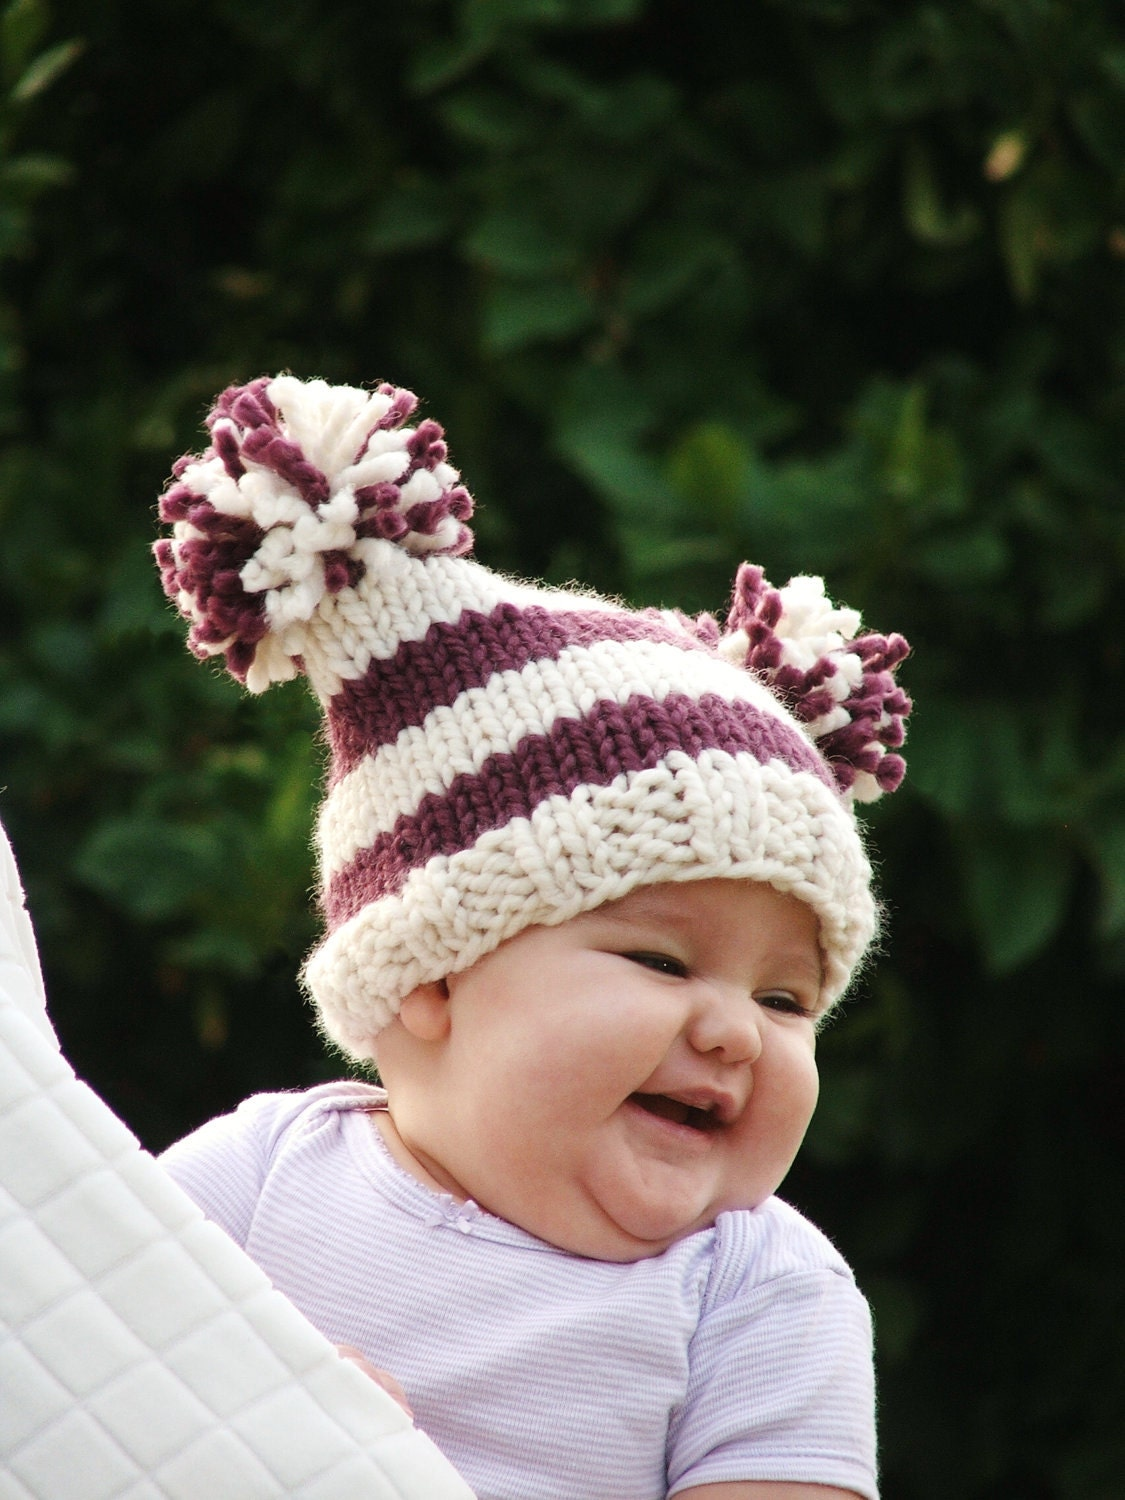 PATTERNS FOR NEWBORN HATS